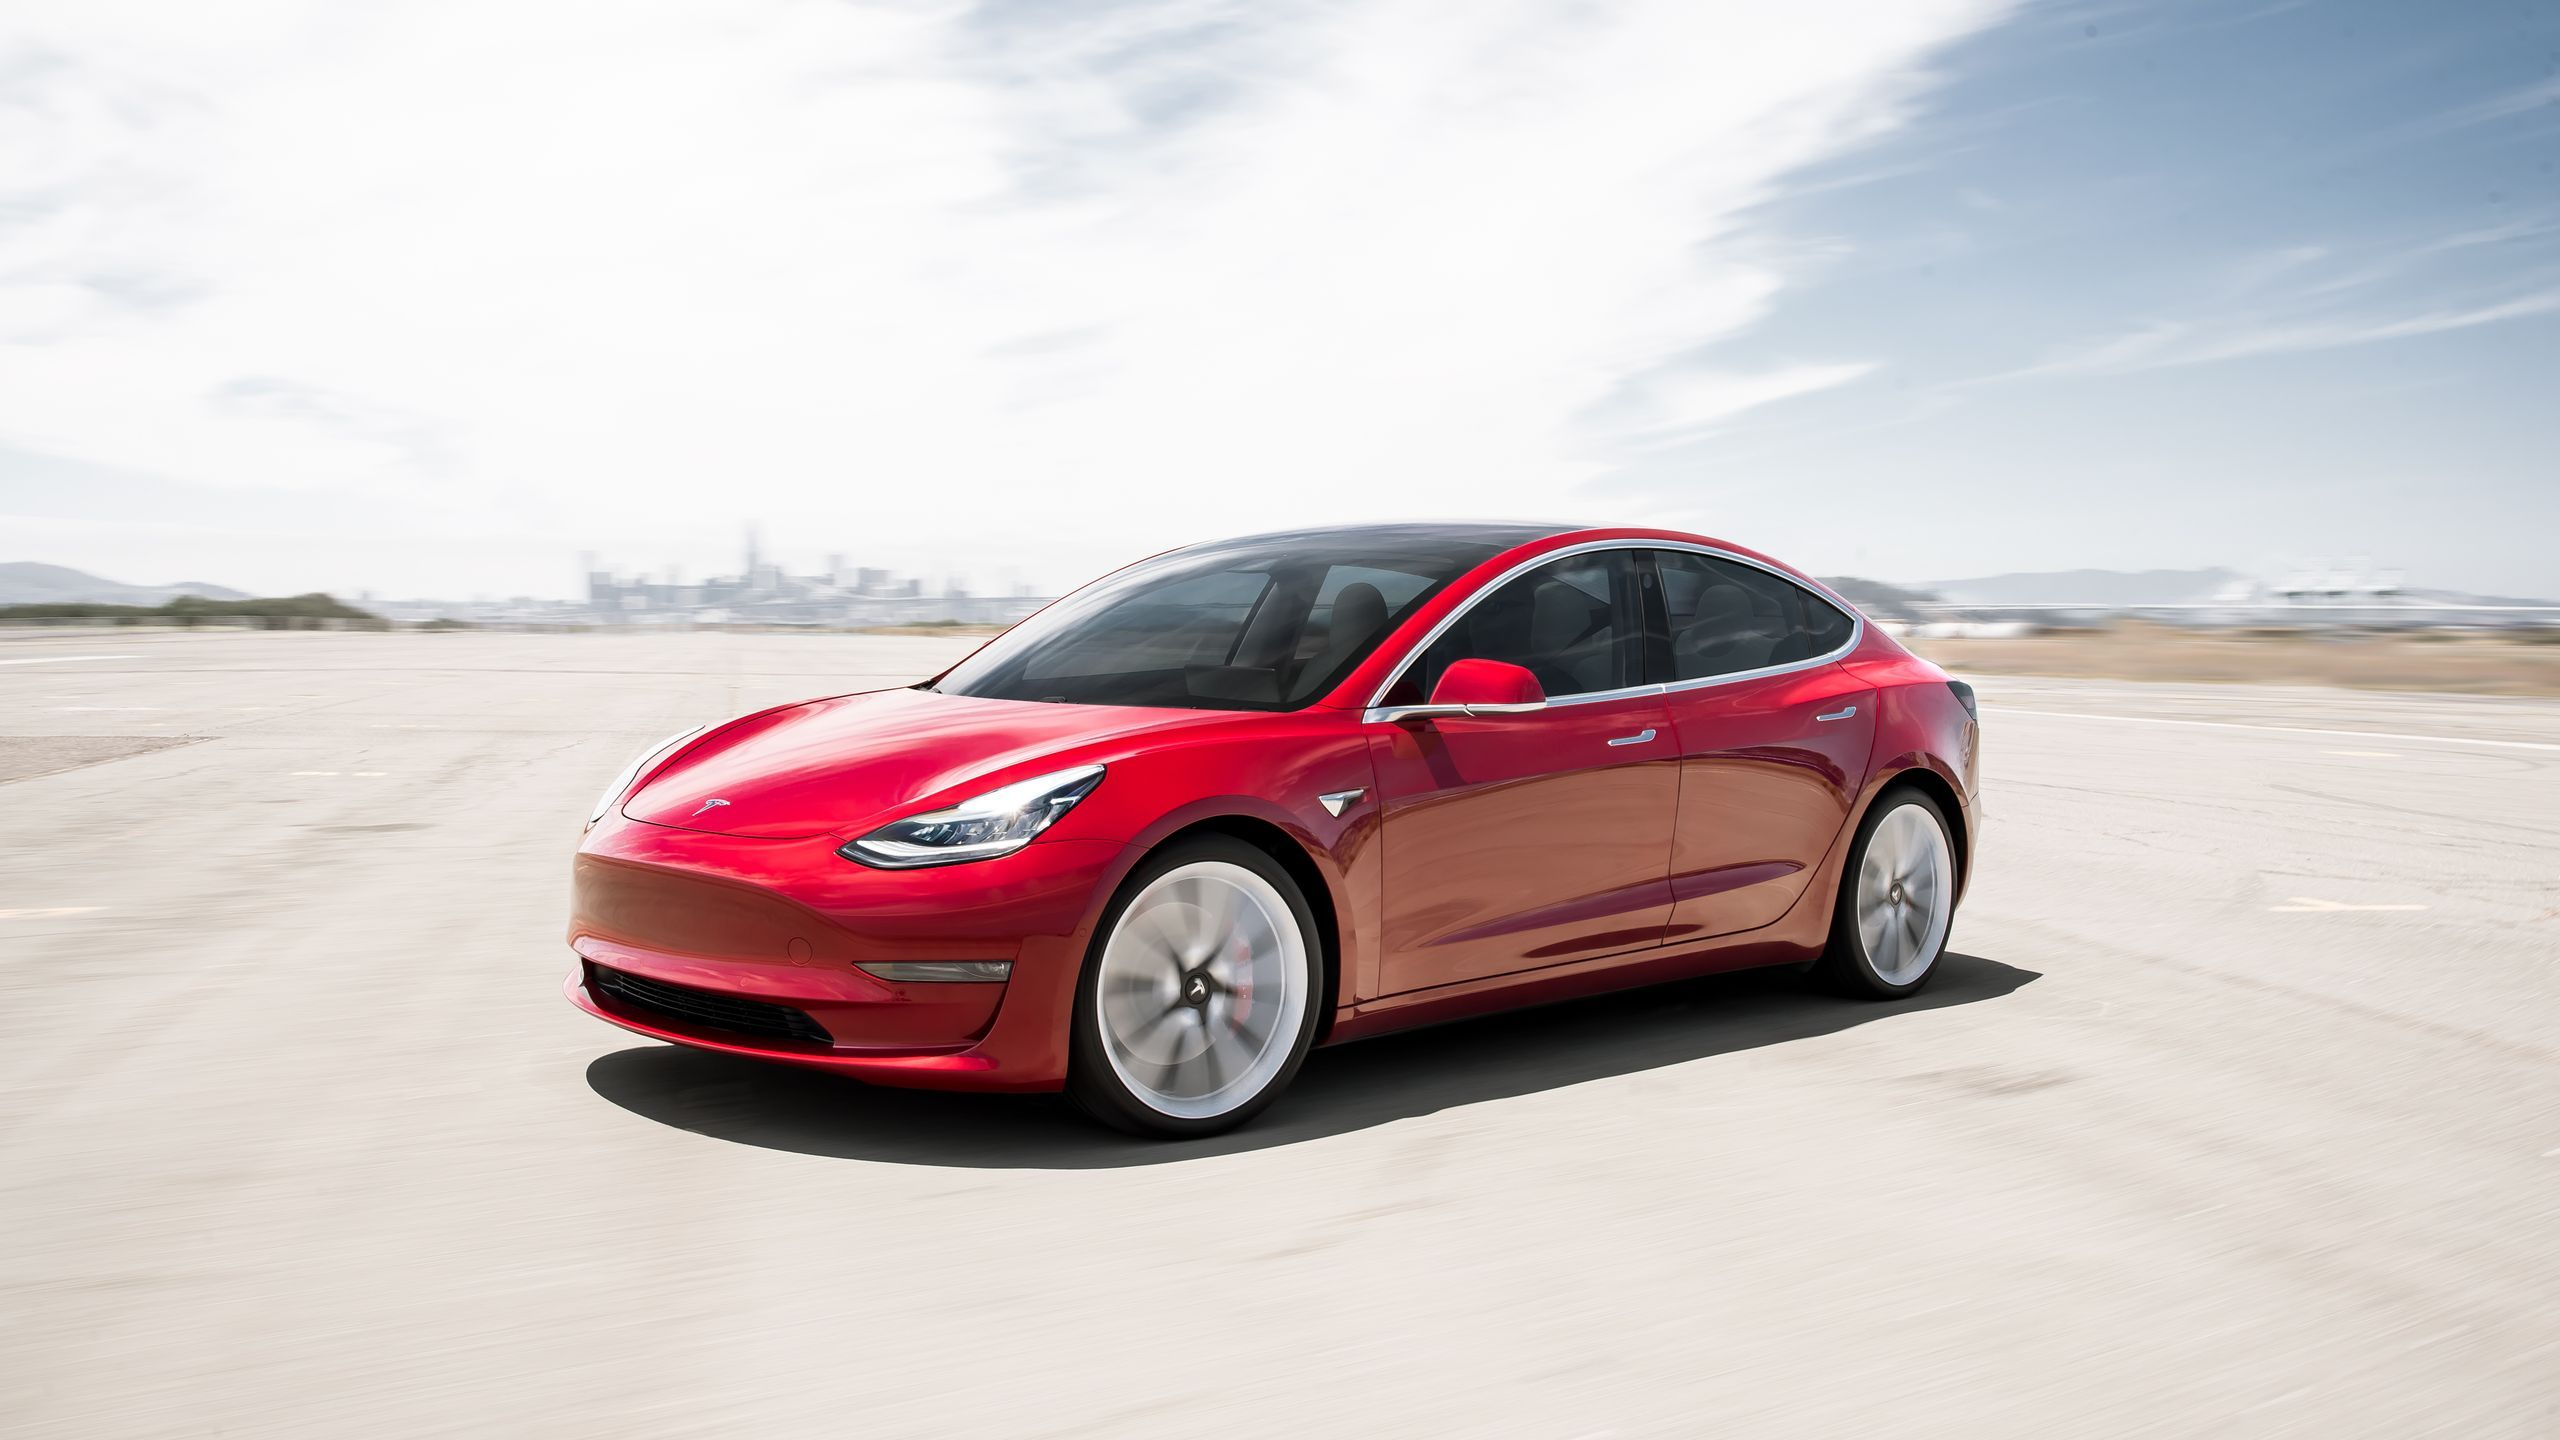 Tesla Model 3 Wallpapers   Top Tesla Model 3 Backgrounds 2560x1440